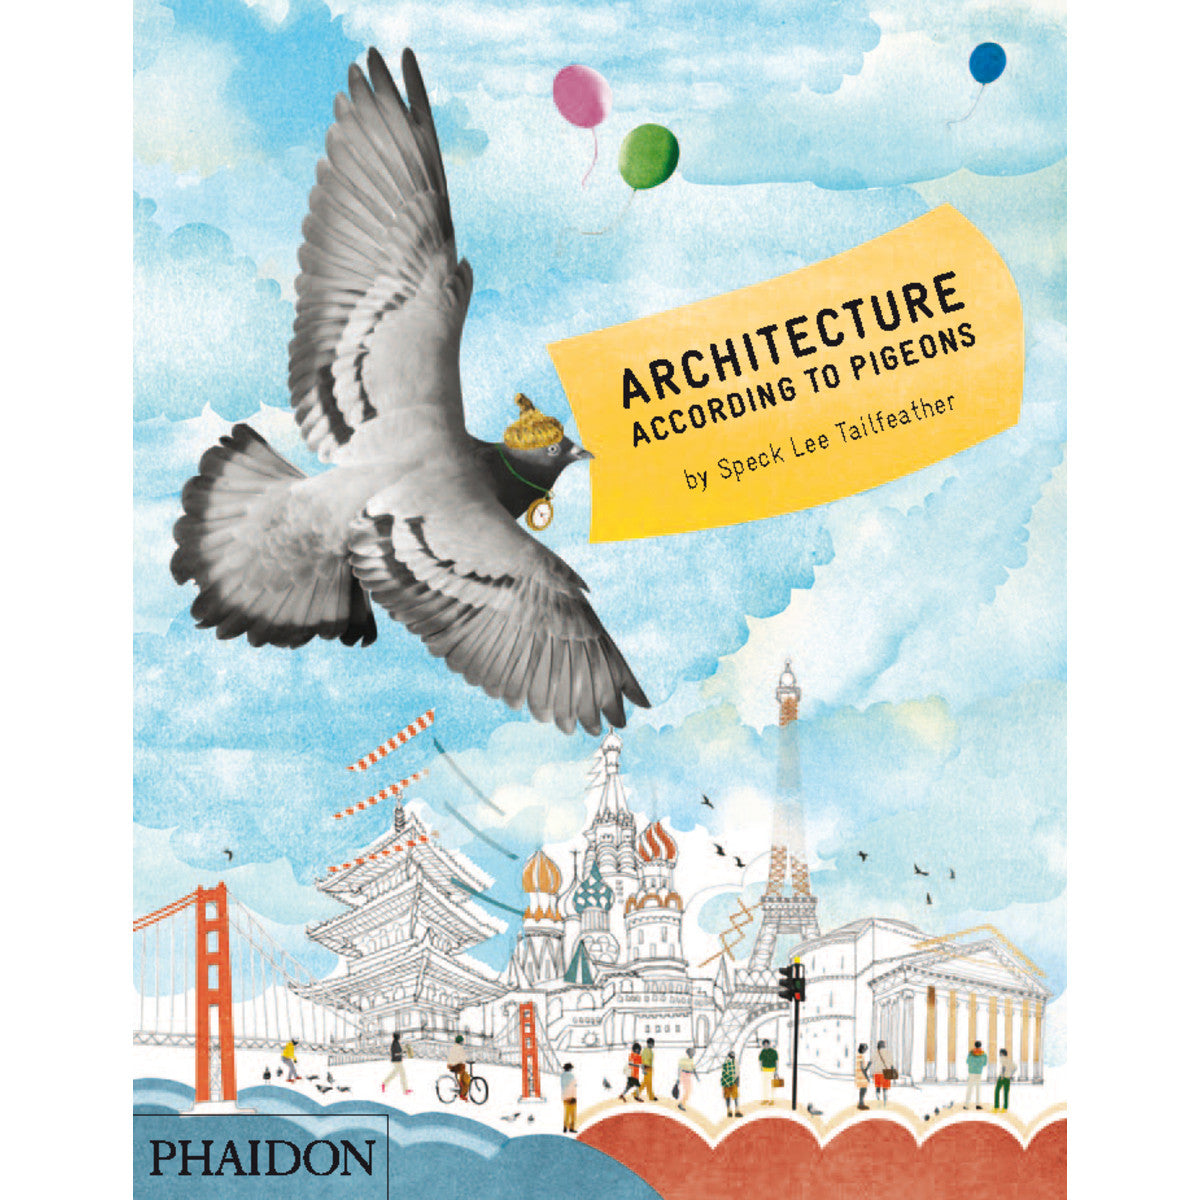 Architecture According to Pigeons - Speck Lee Tailfeather